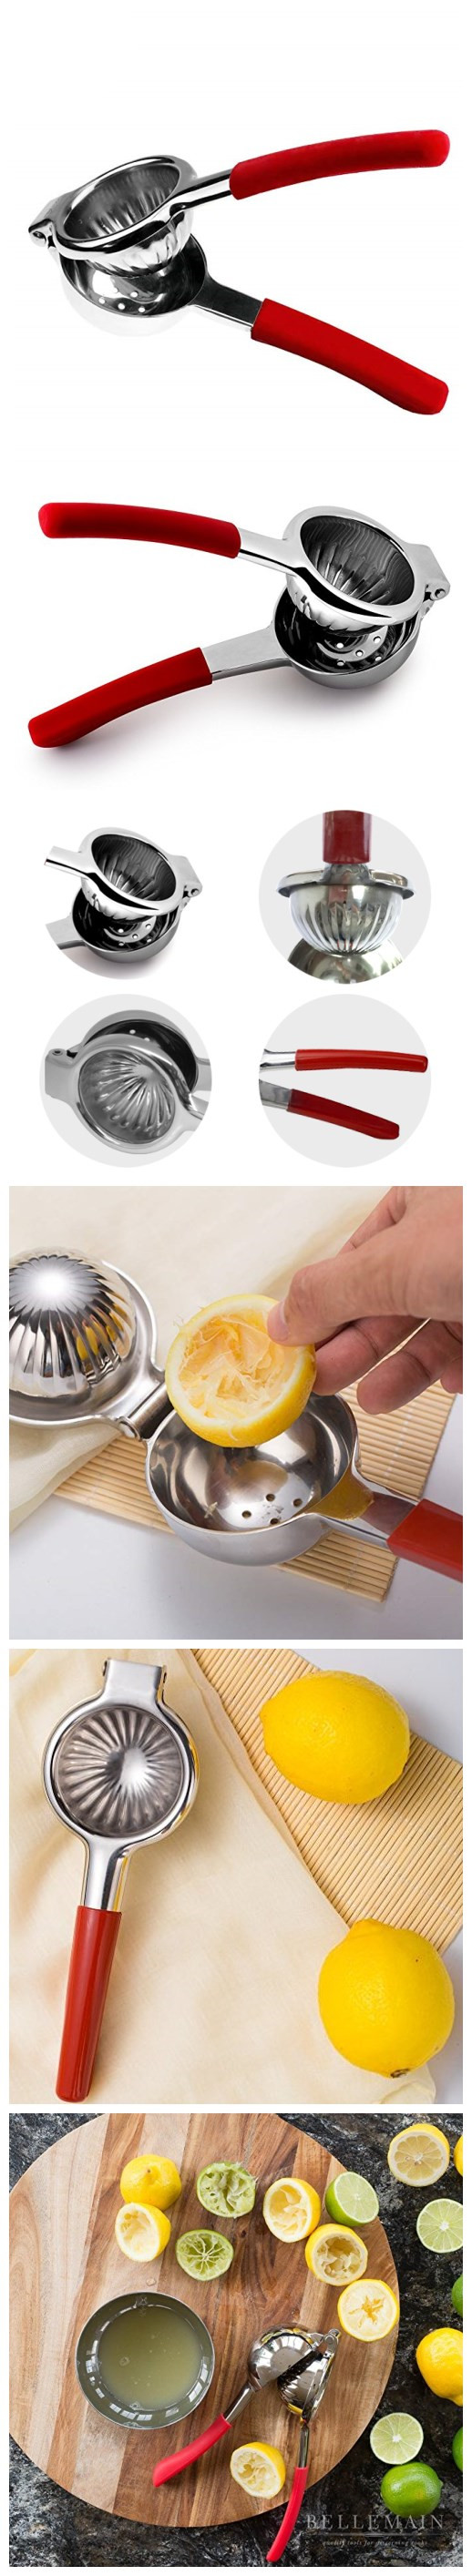 High Quality Stainless Steel Lemon Squeezer with Silicone Handle Lemon Squeezer for Bar